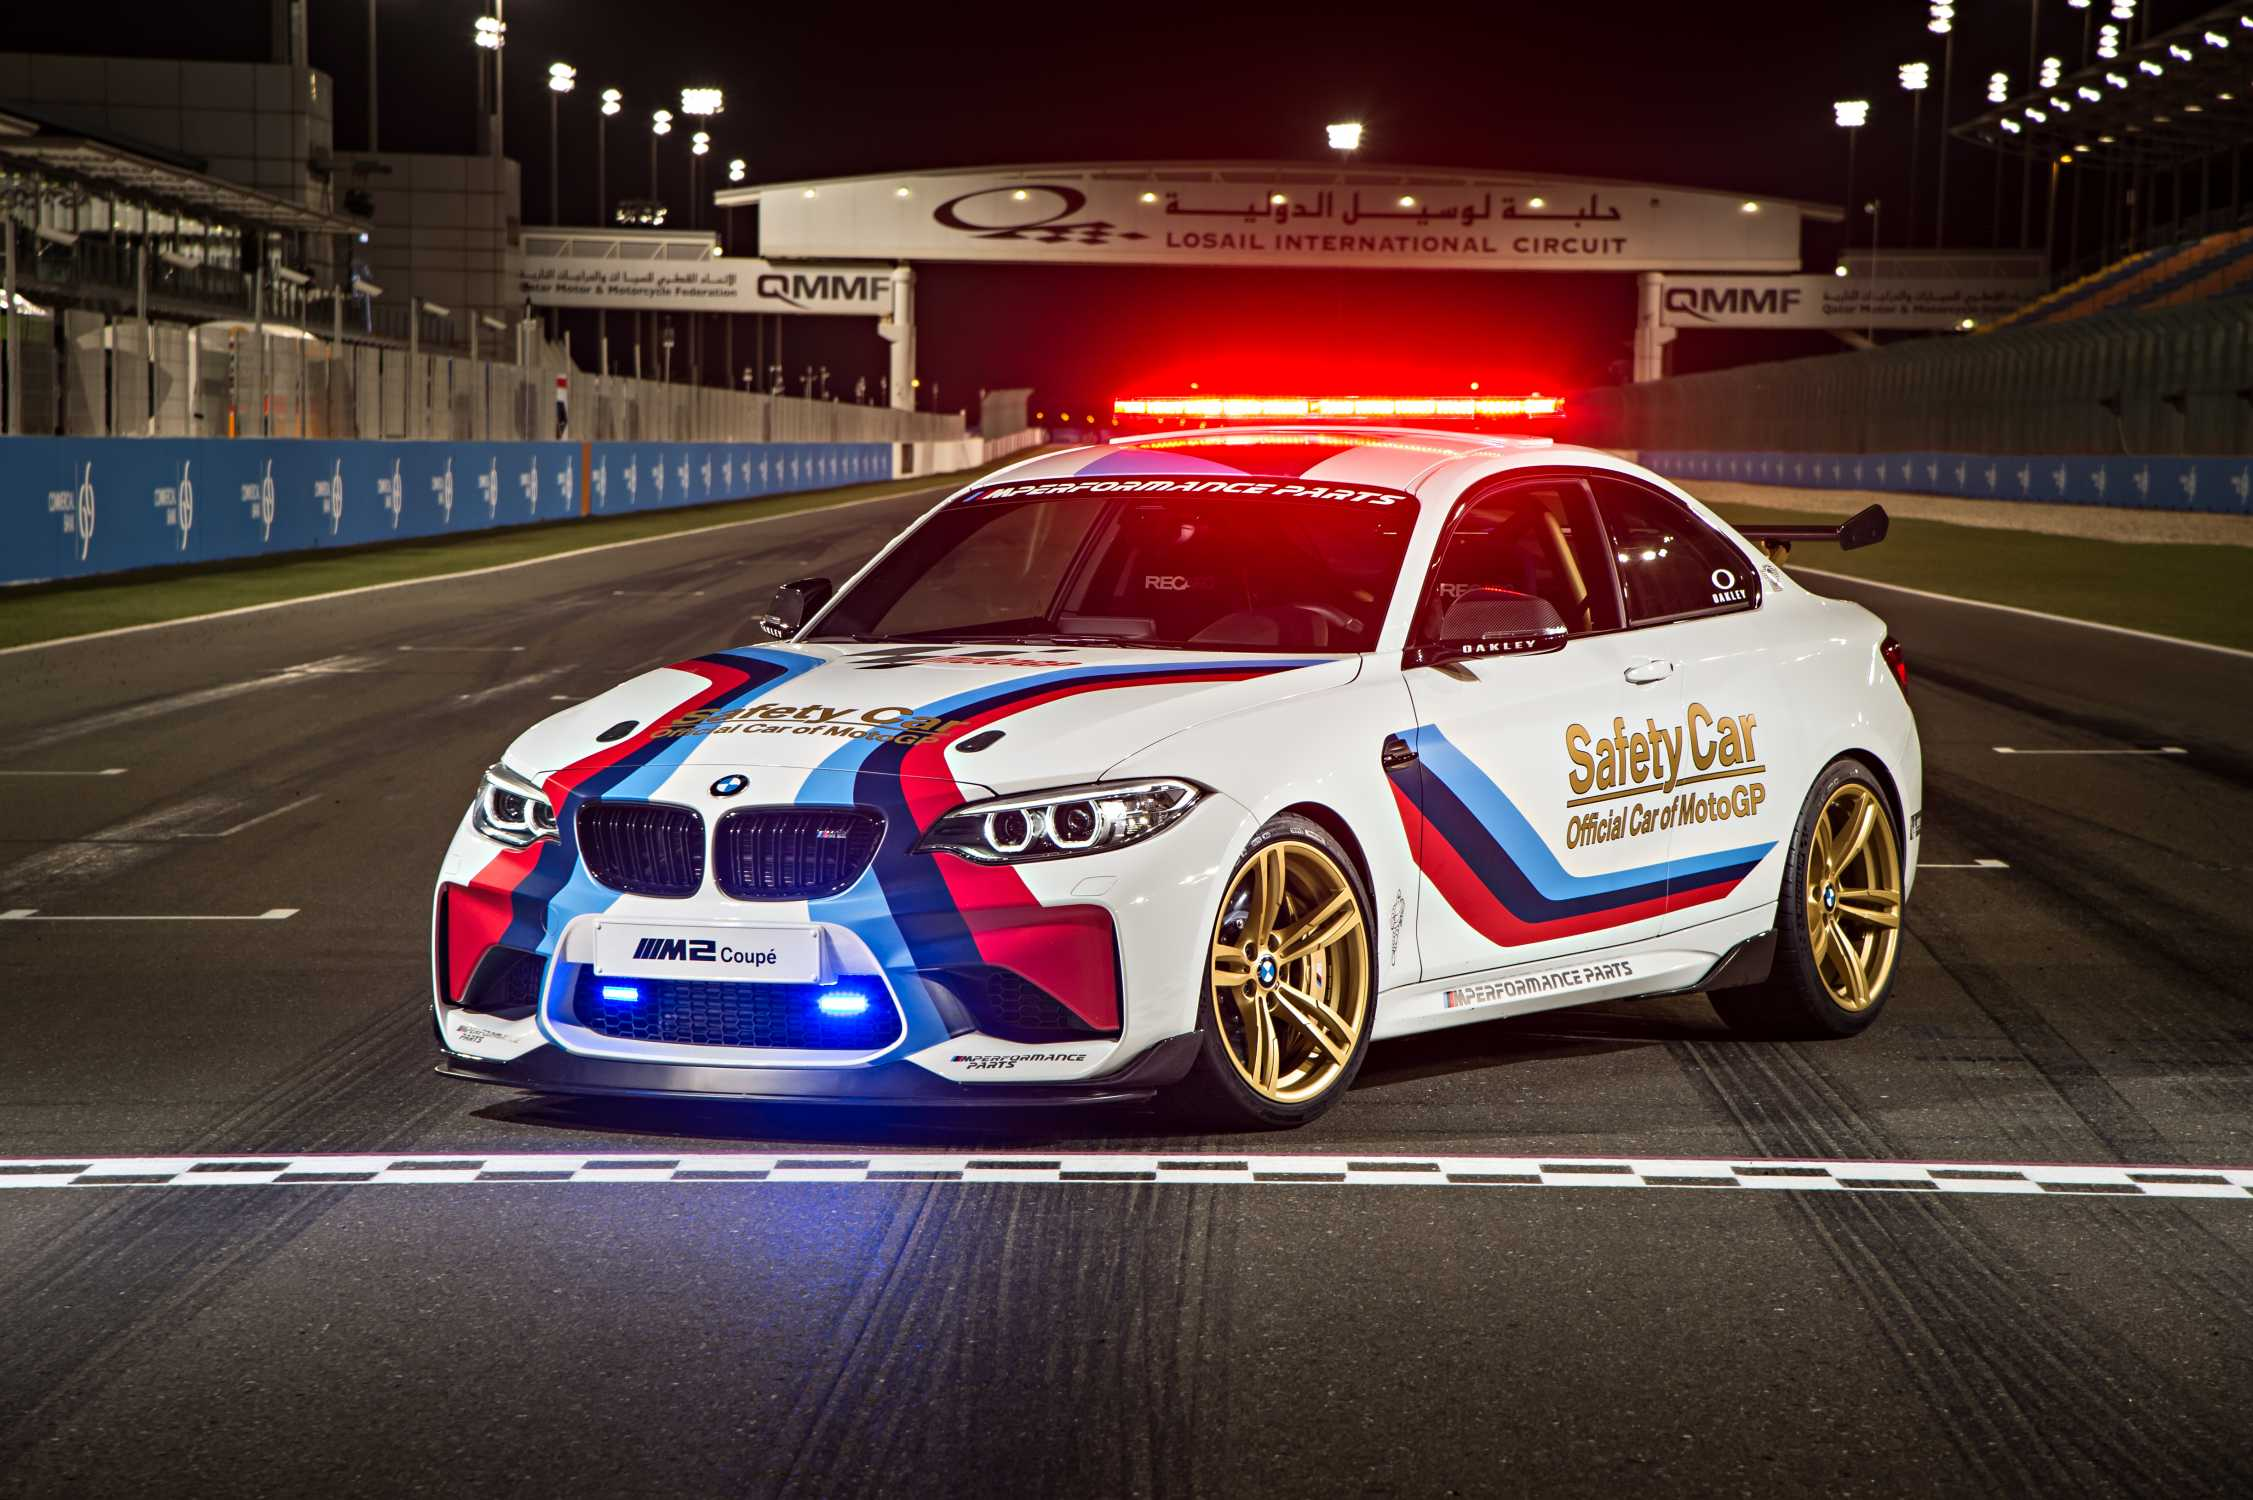 Official Car Of Motogp Bmw M Starts The 2016 Season With New M2 Safety